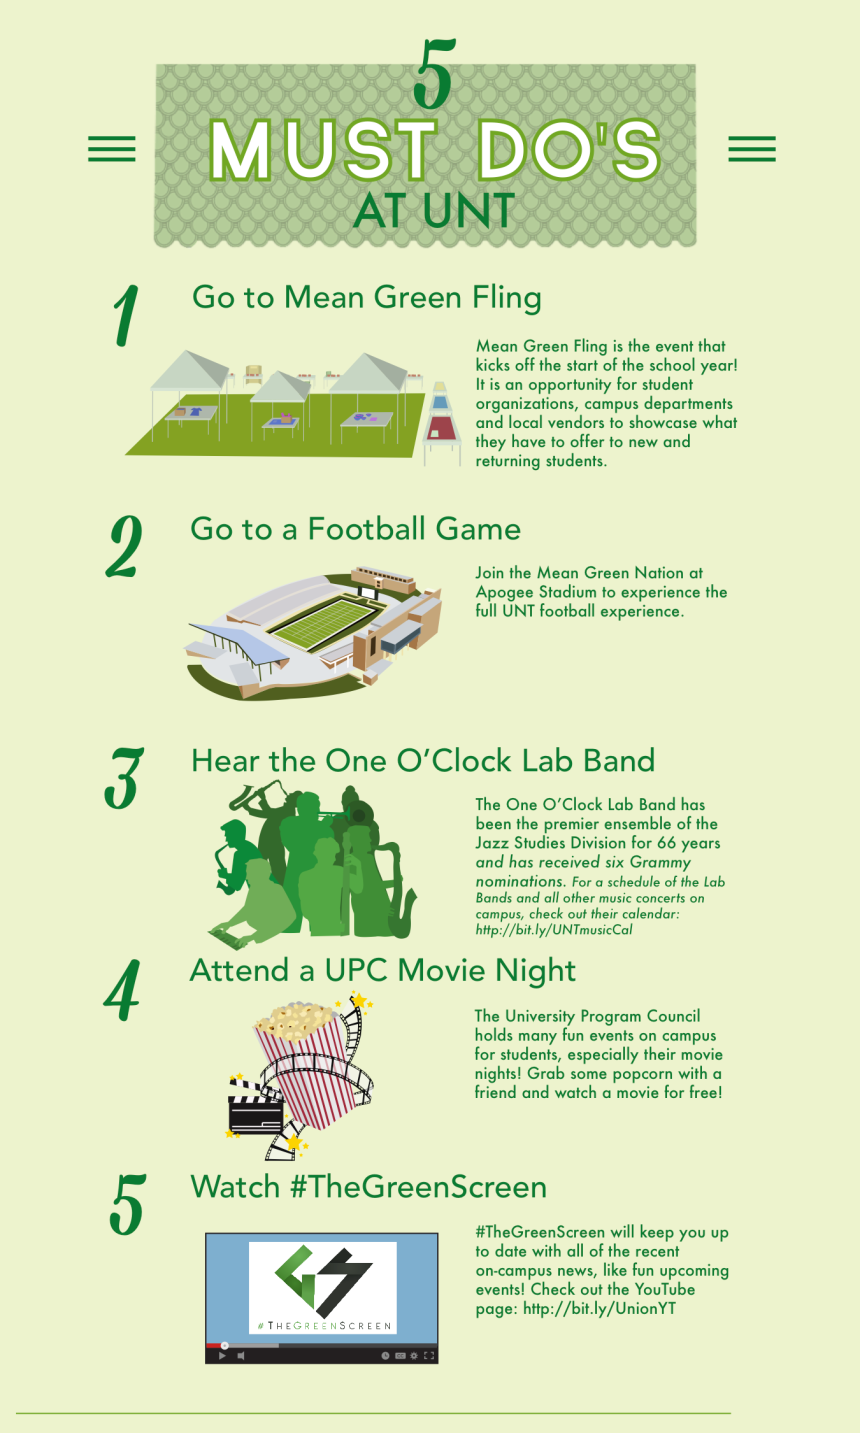 5 Must Dos at UNT (1)